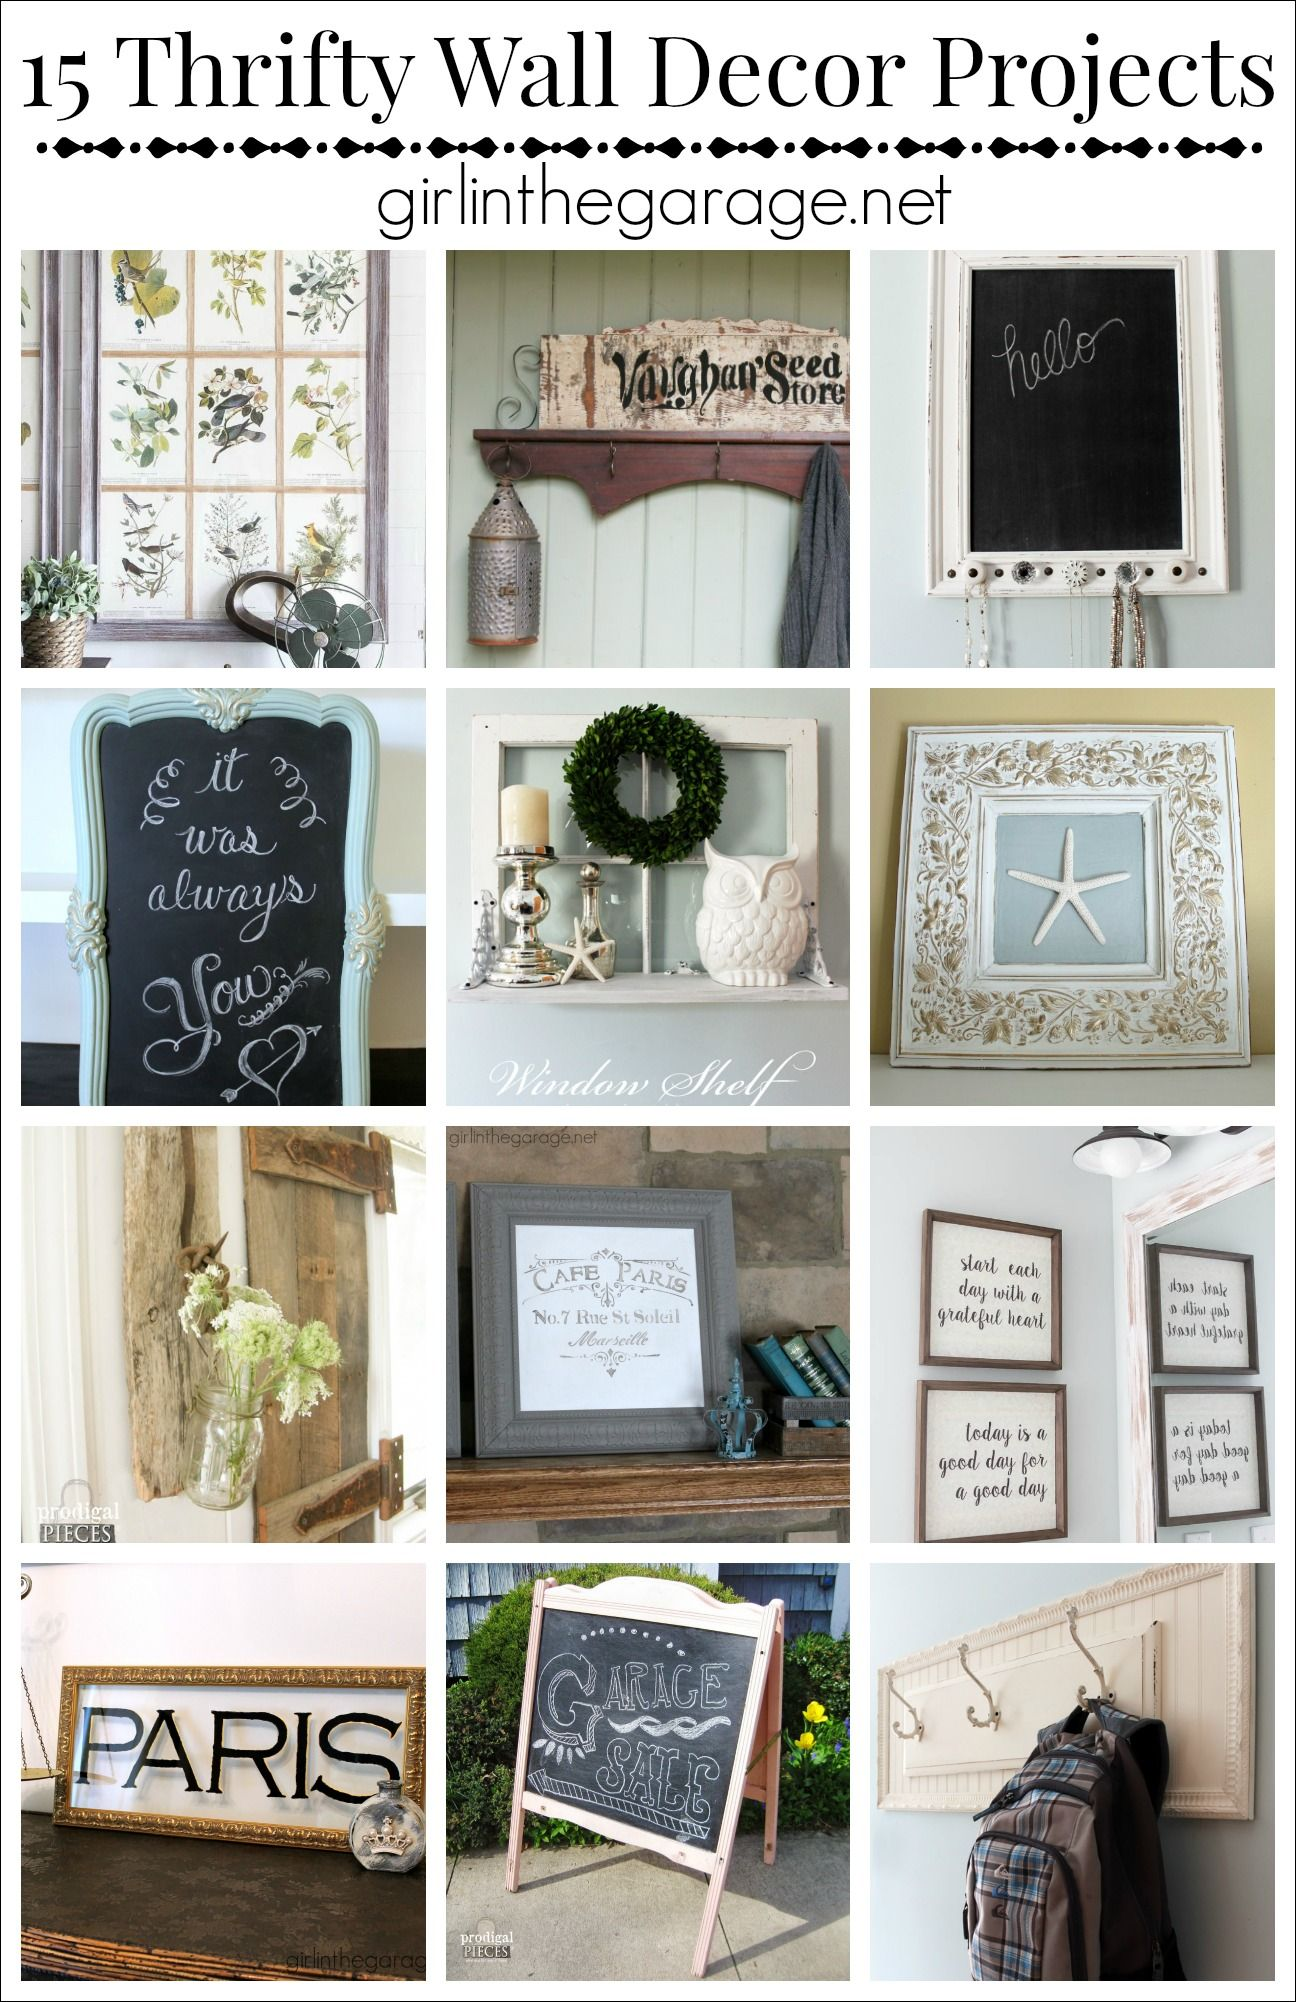 15 Thrifty Diy Wall Decor Projects Girl In The Garage Old Is New